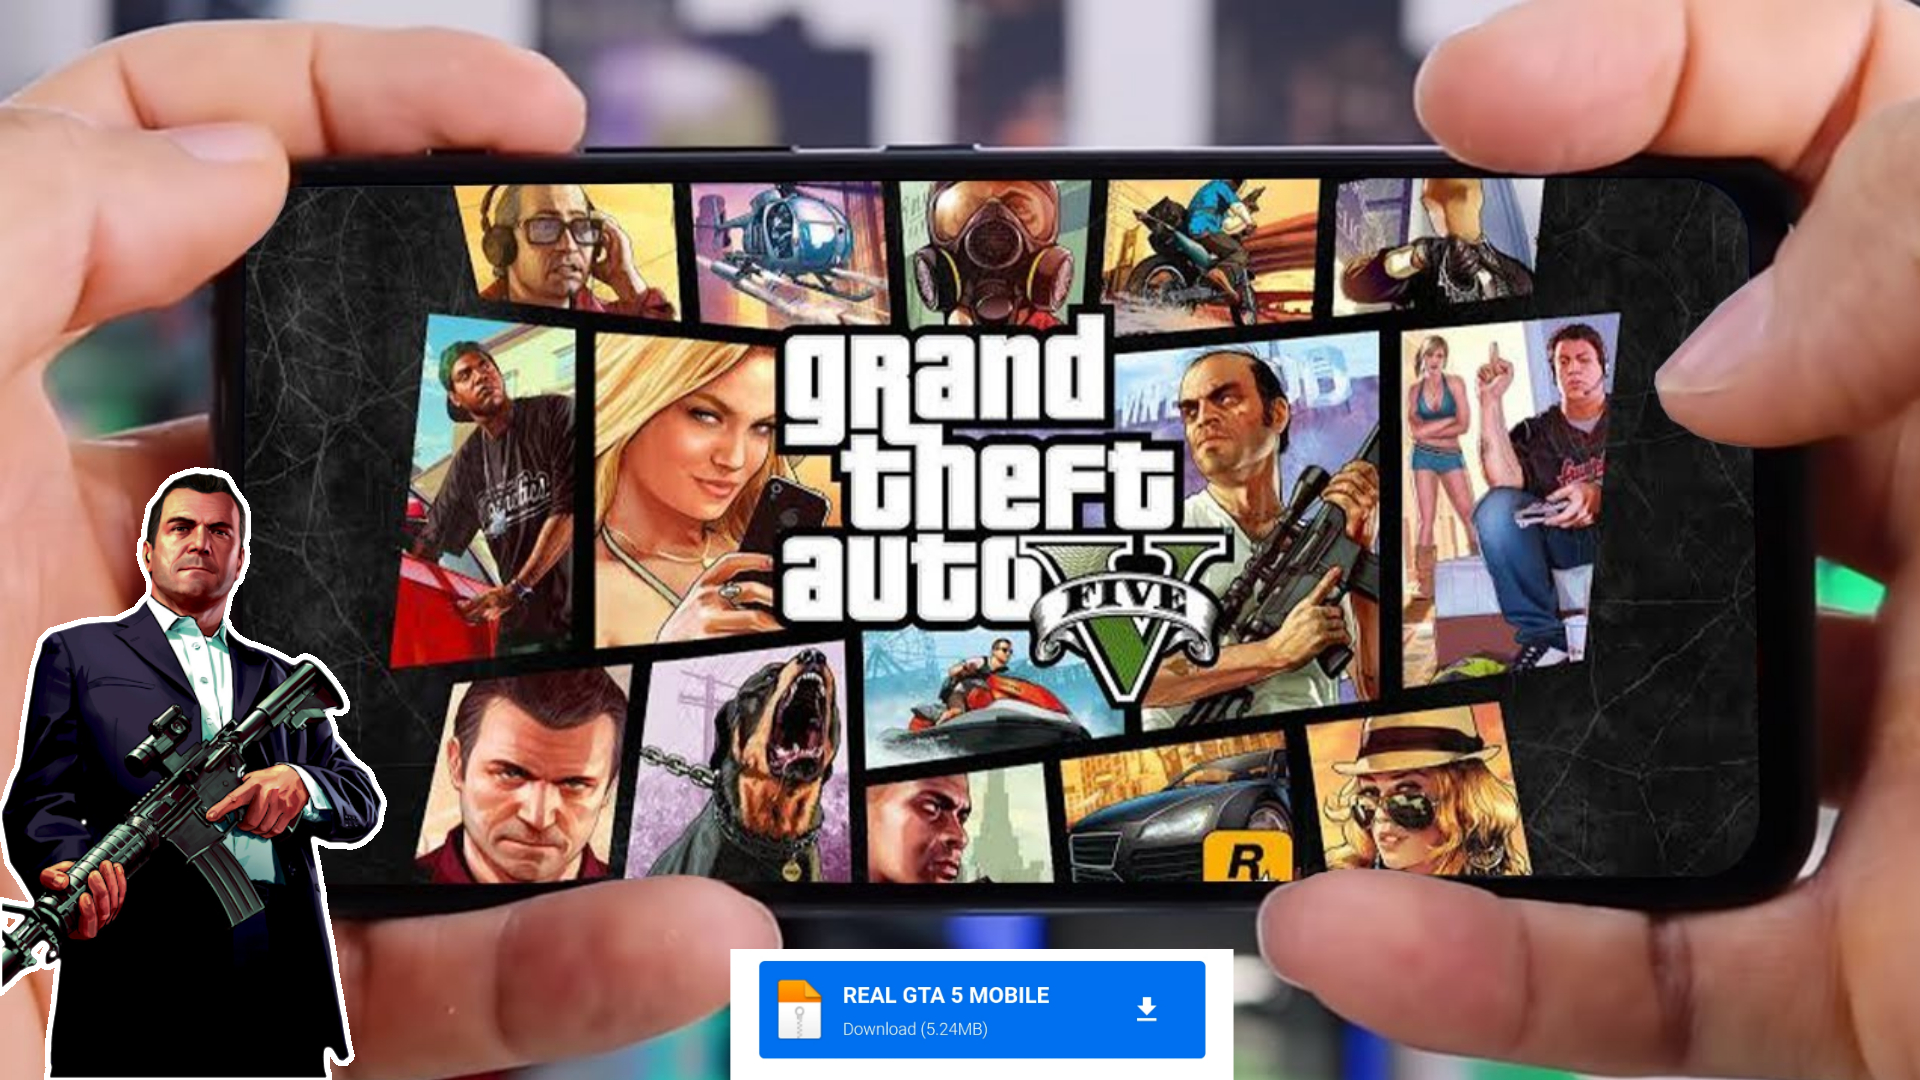 Gta 5 Apk Download For Pc